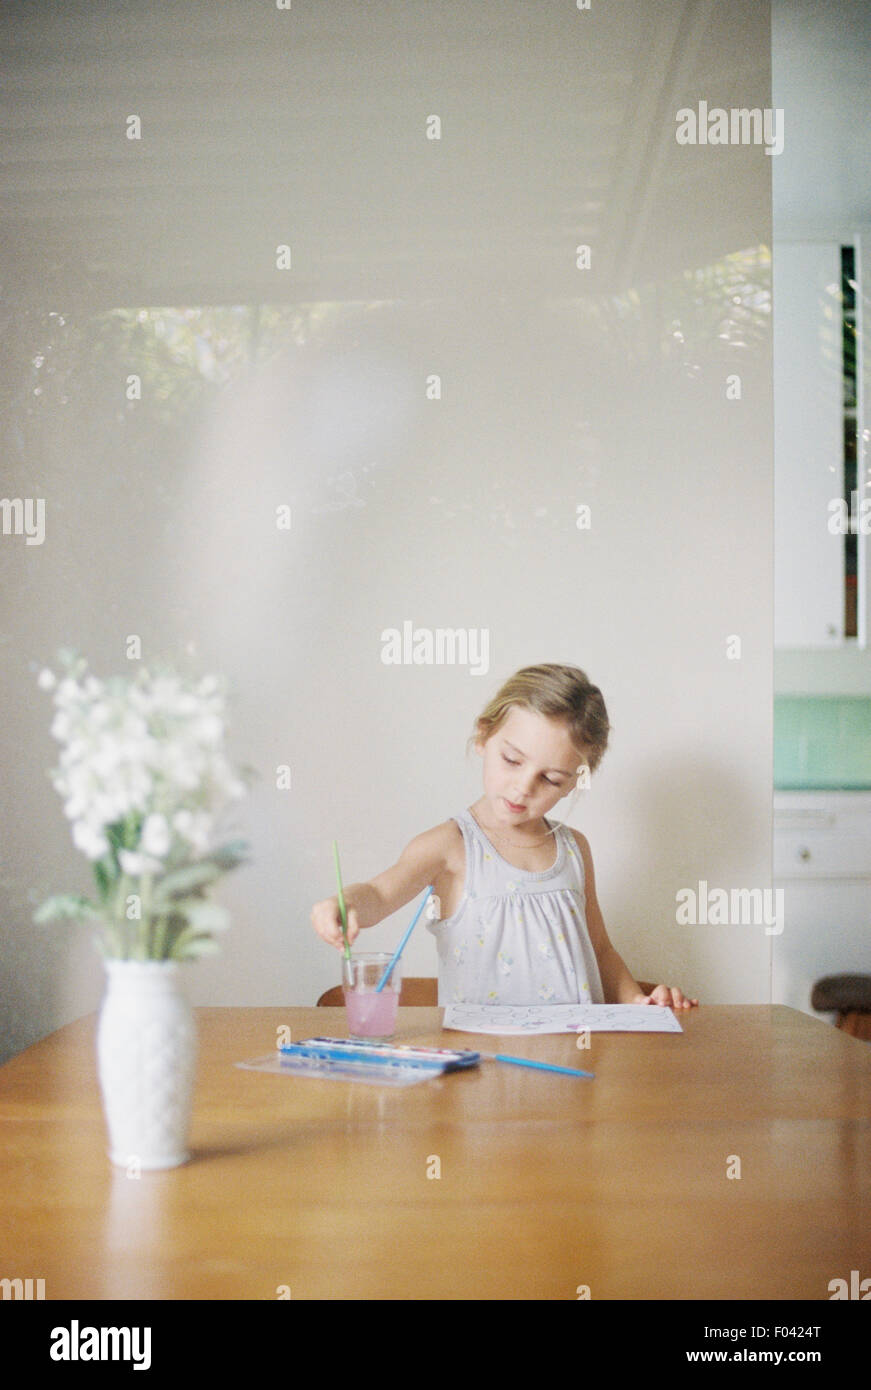 Young girl sitting at  a table, painting, a vase with white flowers. - Stock Image